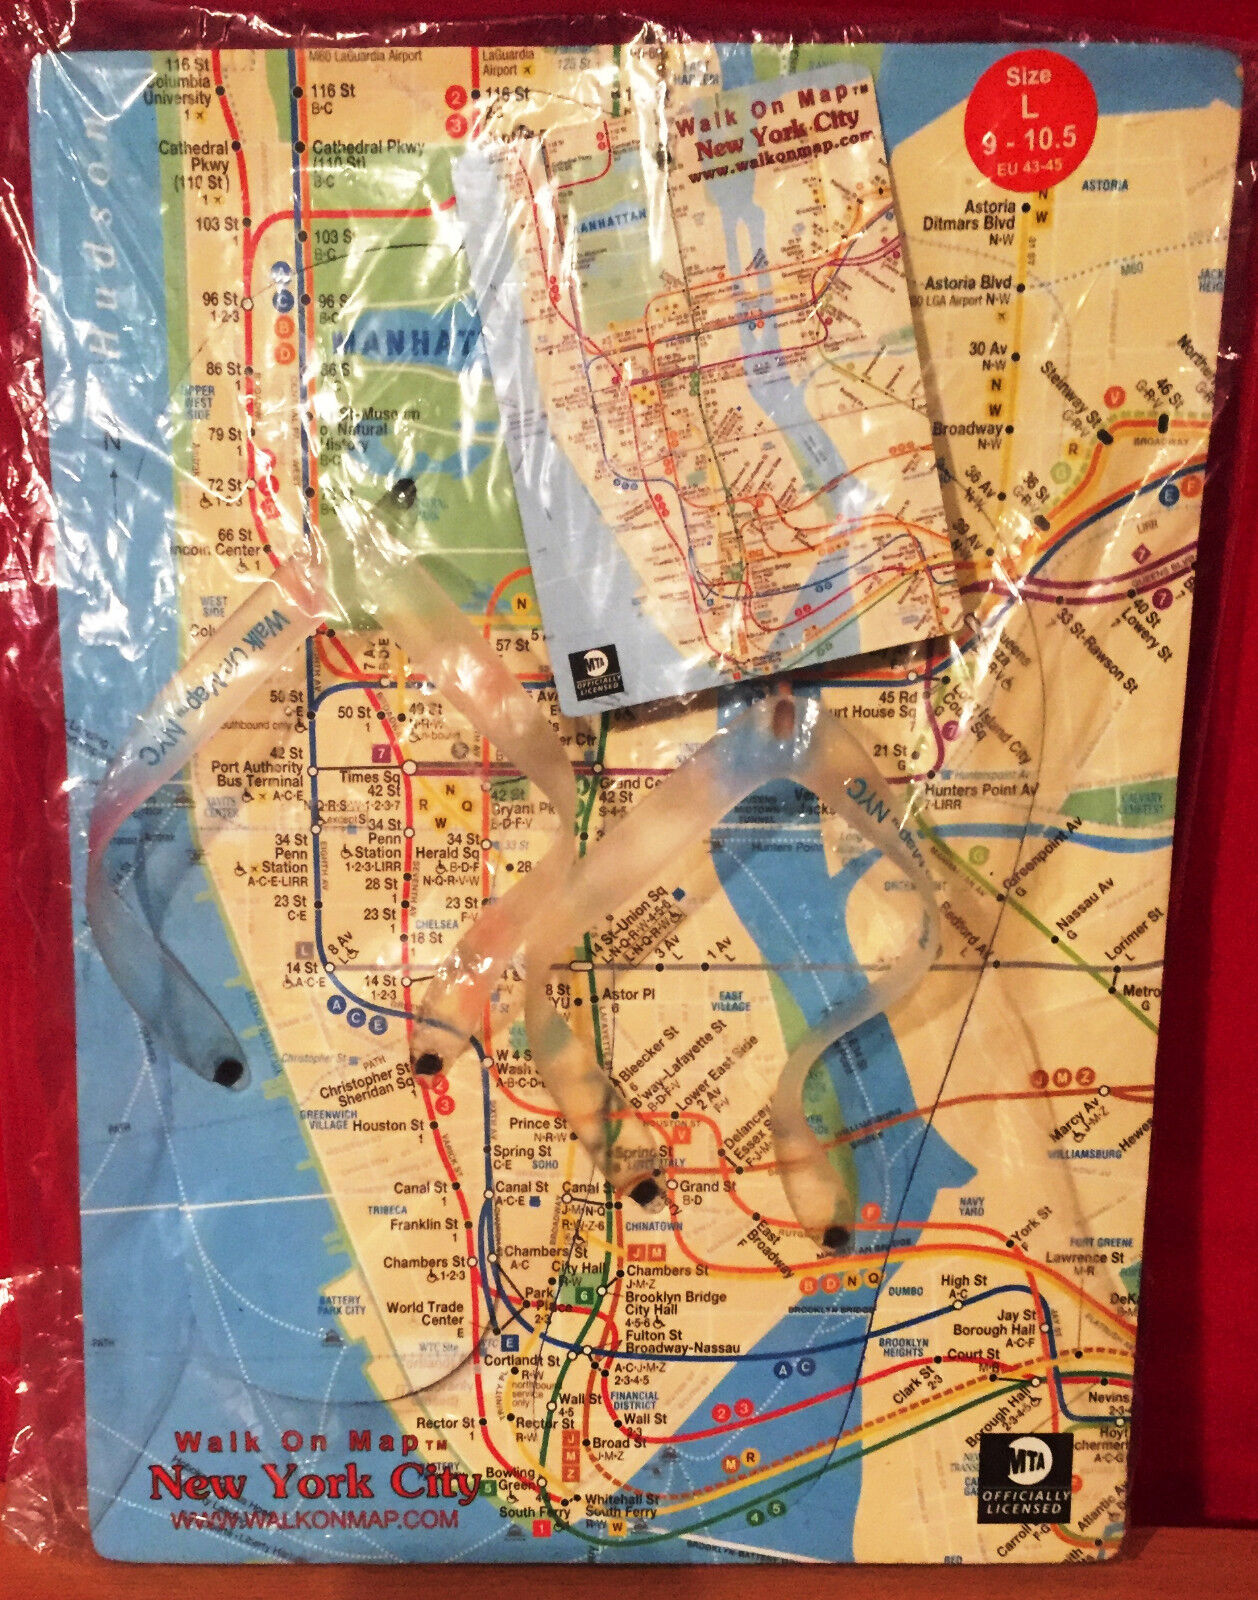 Large Ny Subway Map.Details About Nyc Subway Map Flip Flops Nyc Tourist Sandals Size Large 9 10 5